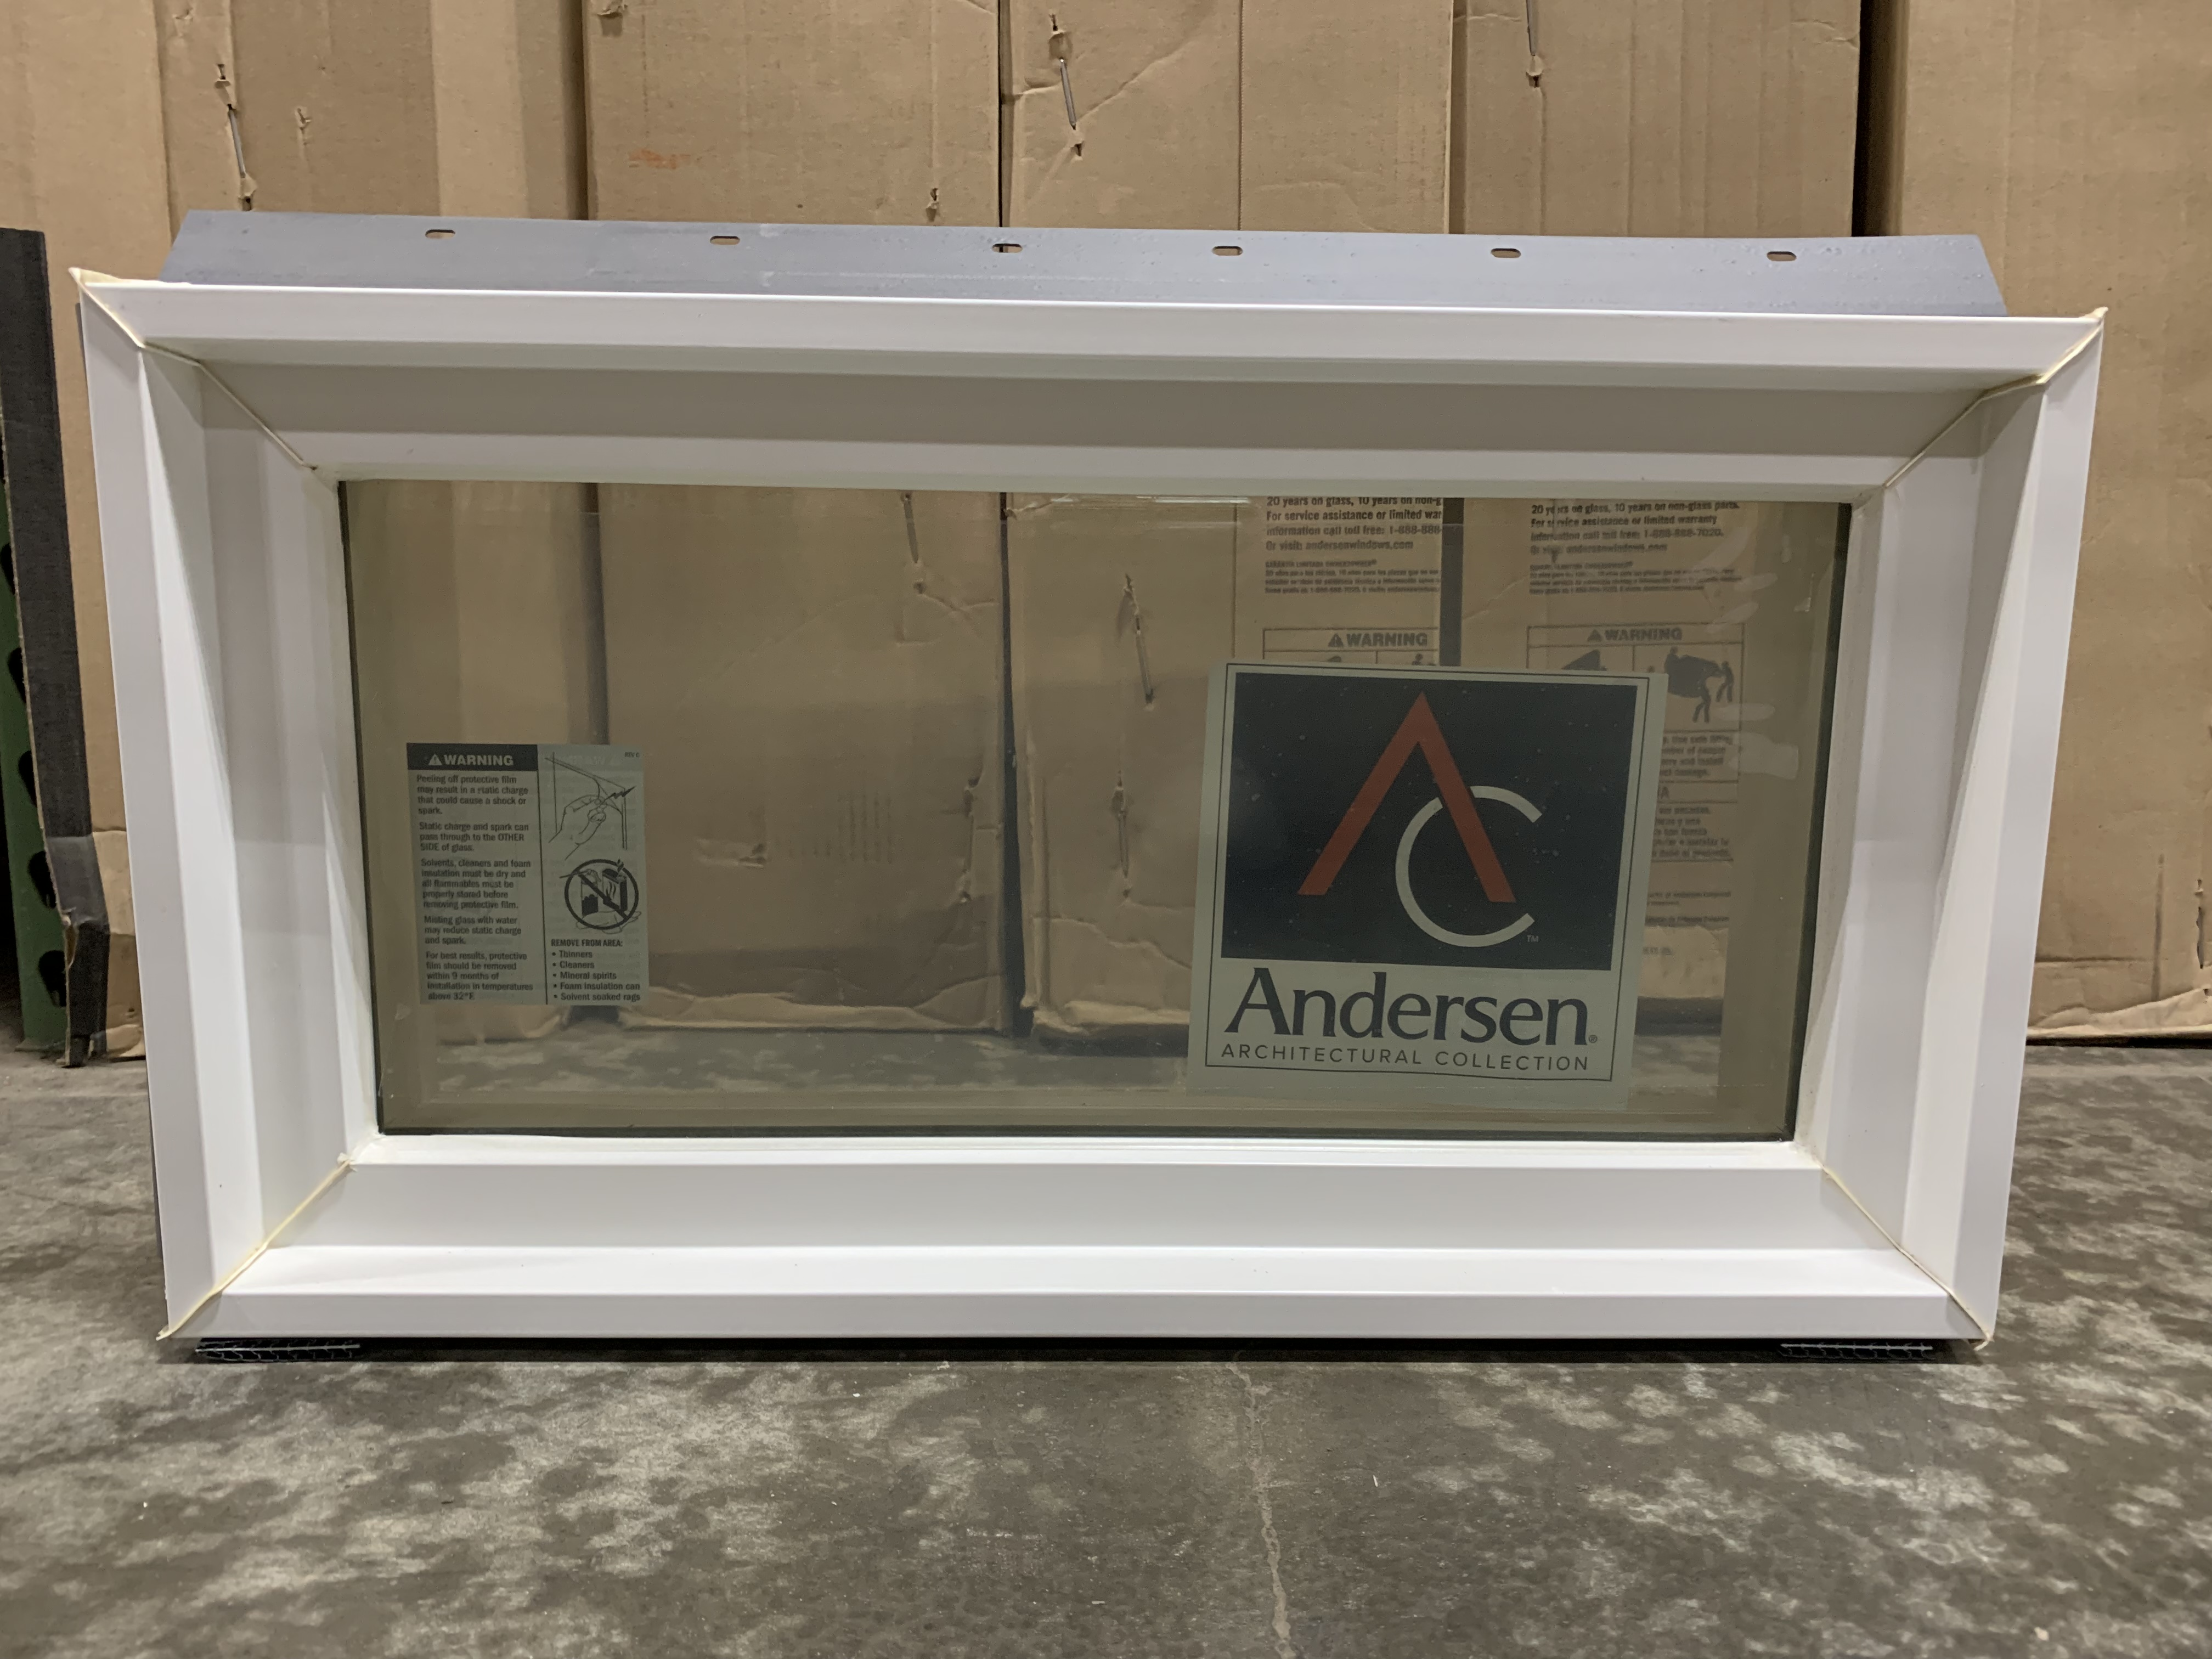 Andersen Aluminum-Clad Wood Frame A Series Window